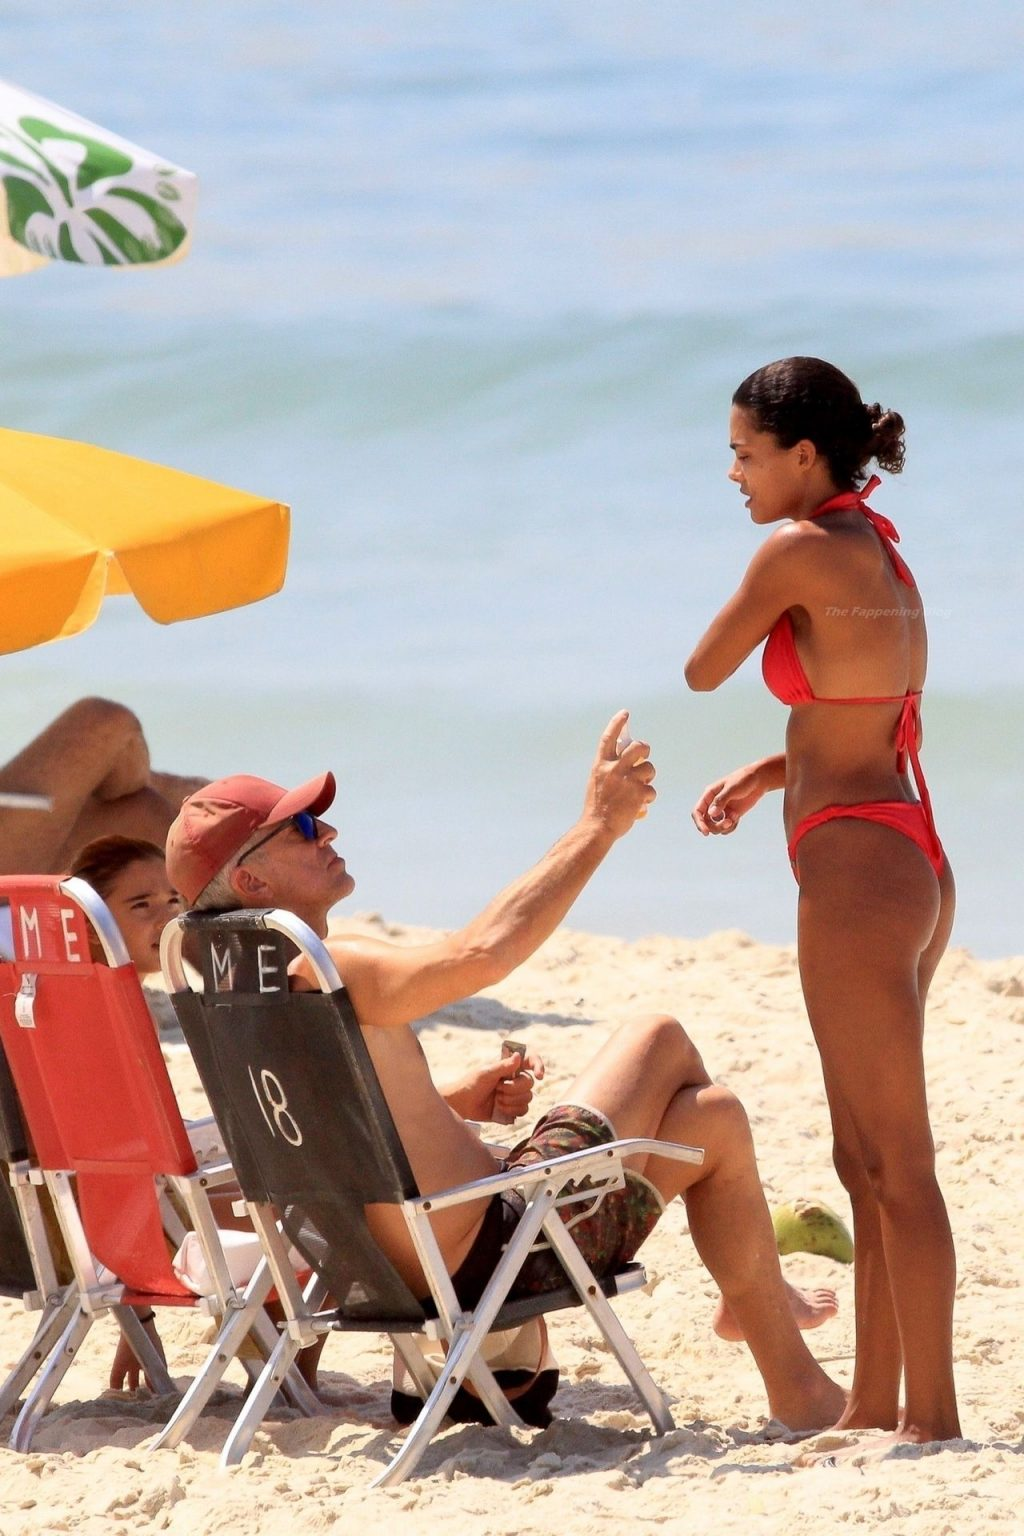 Vincent Cassel & Tina Kunakey Bare Their Hot Bodies at the Beach in Brazil (40 Photos)